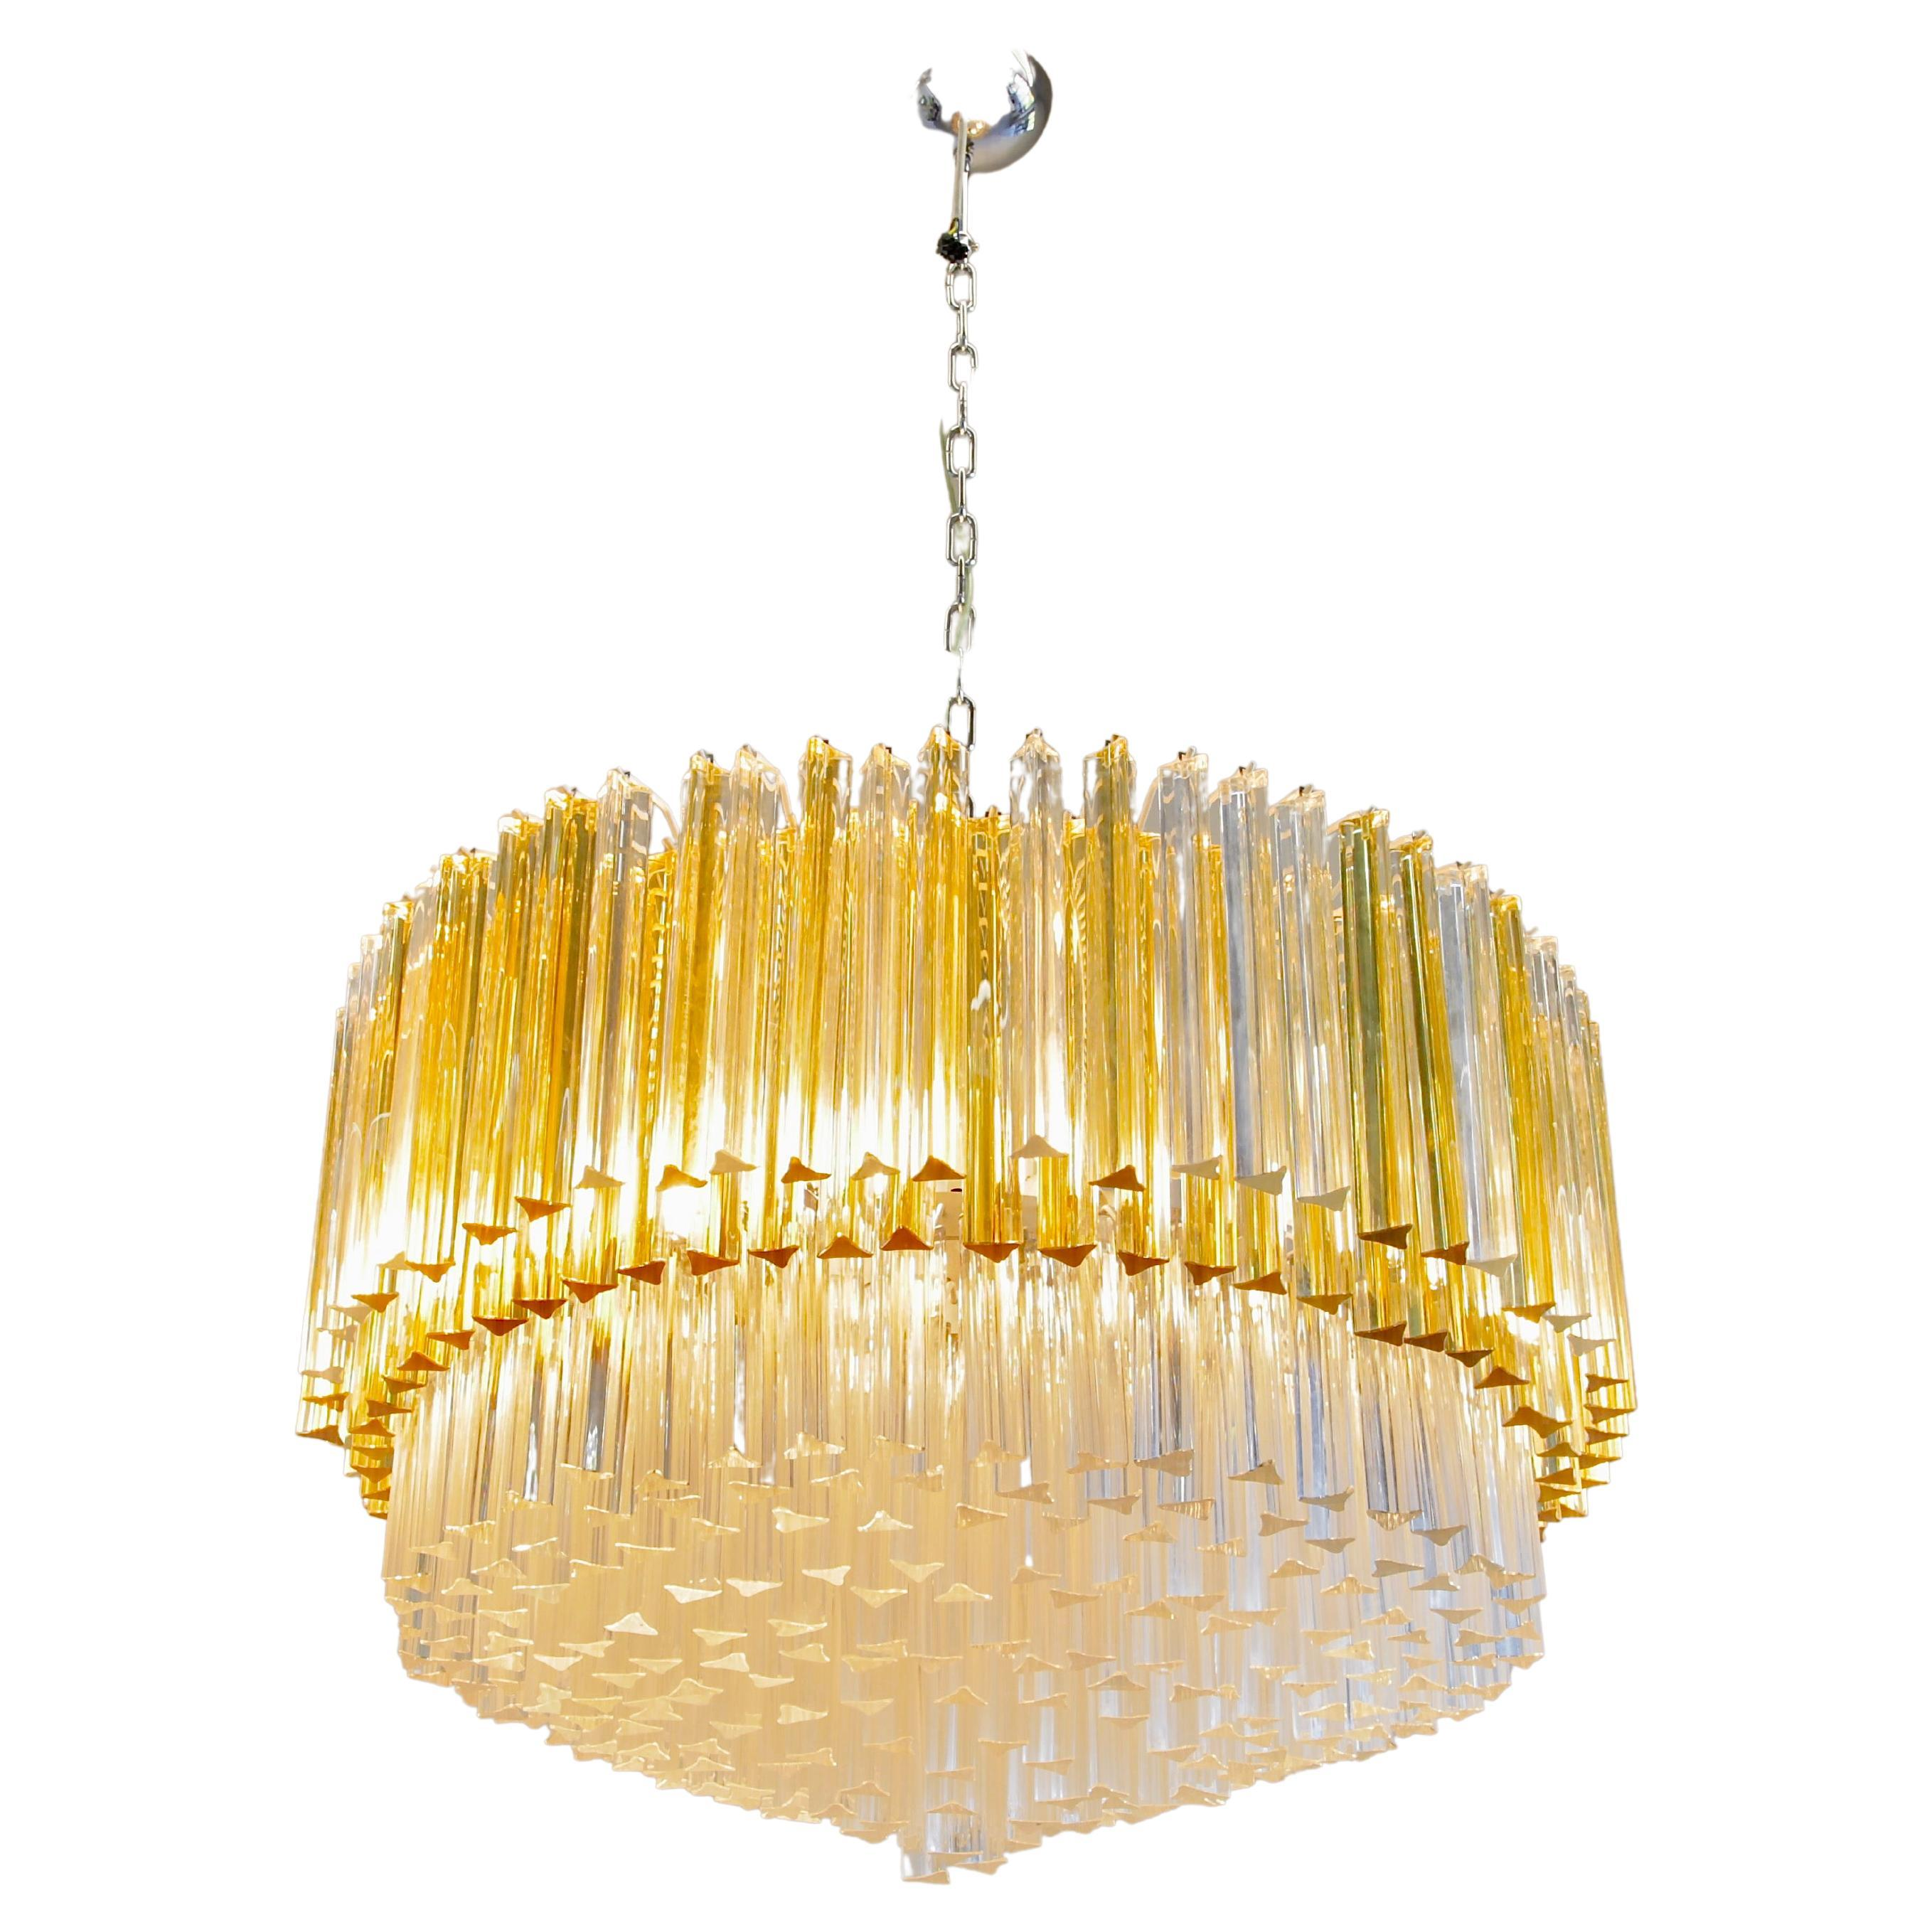 Large Trilobi Glass Chandelier 'Clear/ Amber', Murano